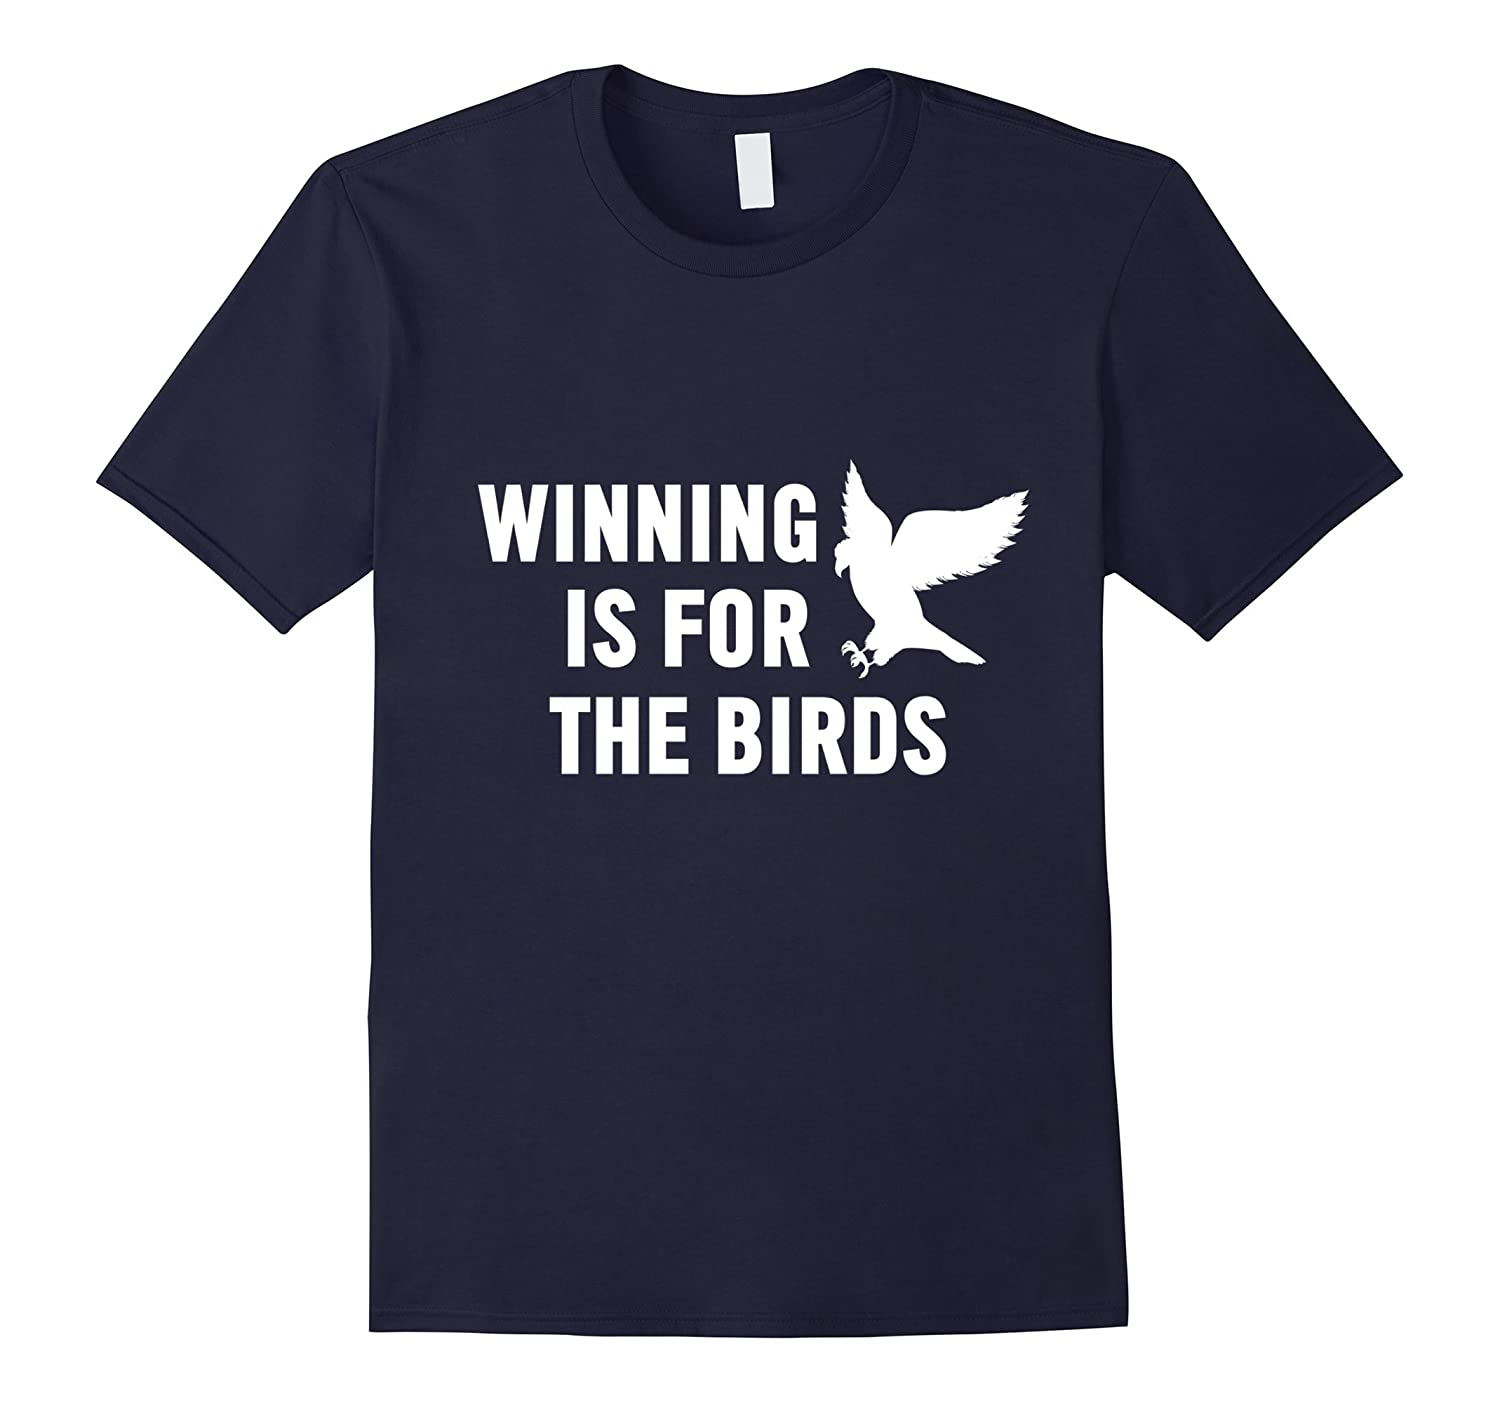 Winning Is For The Birds Shirt Eagle Mascot Shirt-ah my shirt one gift